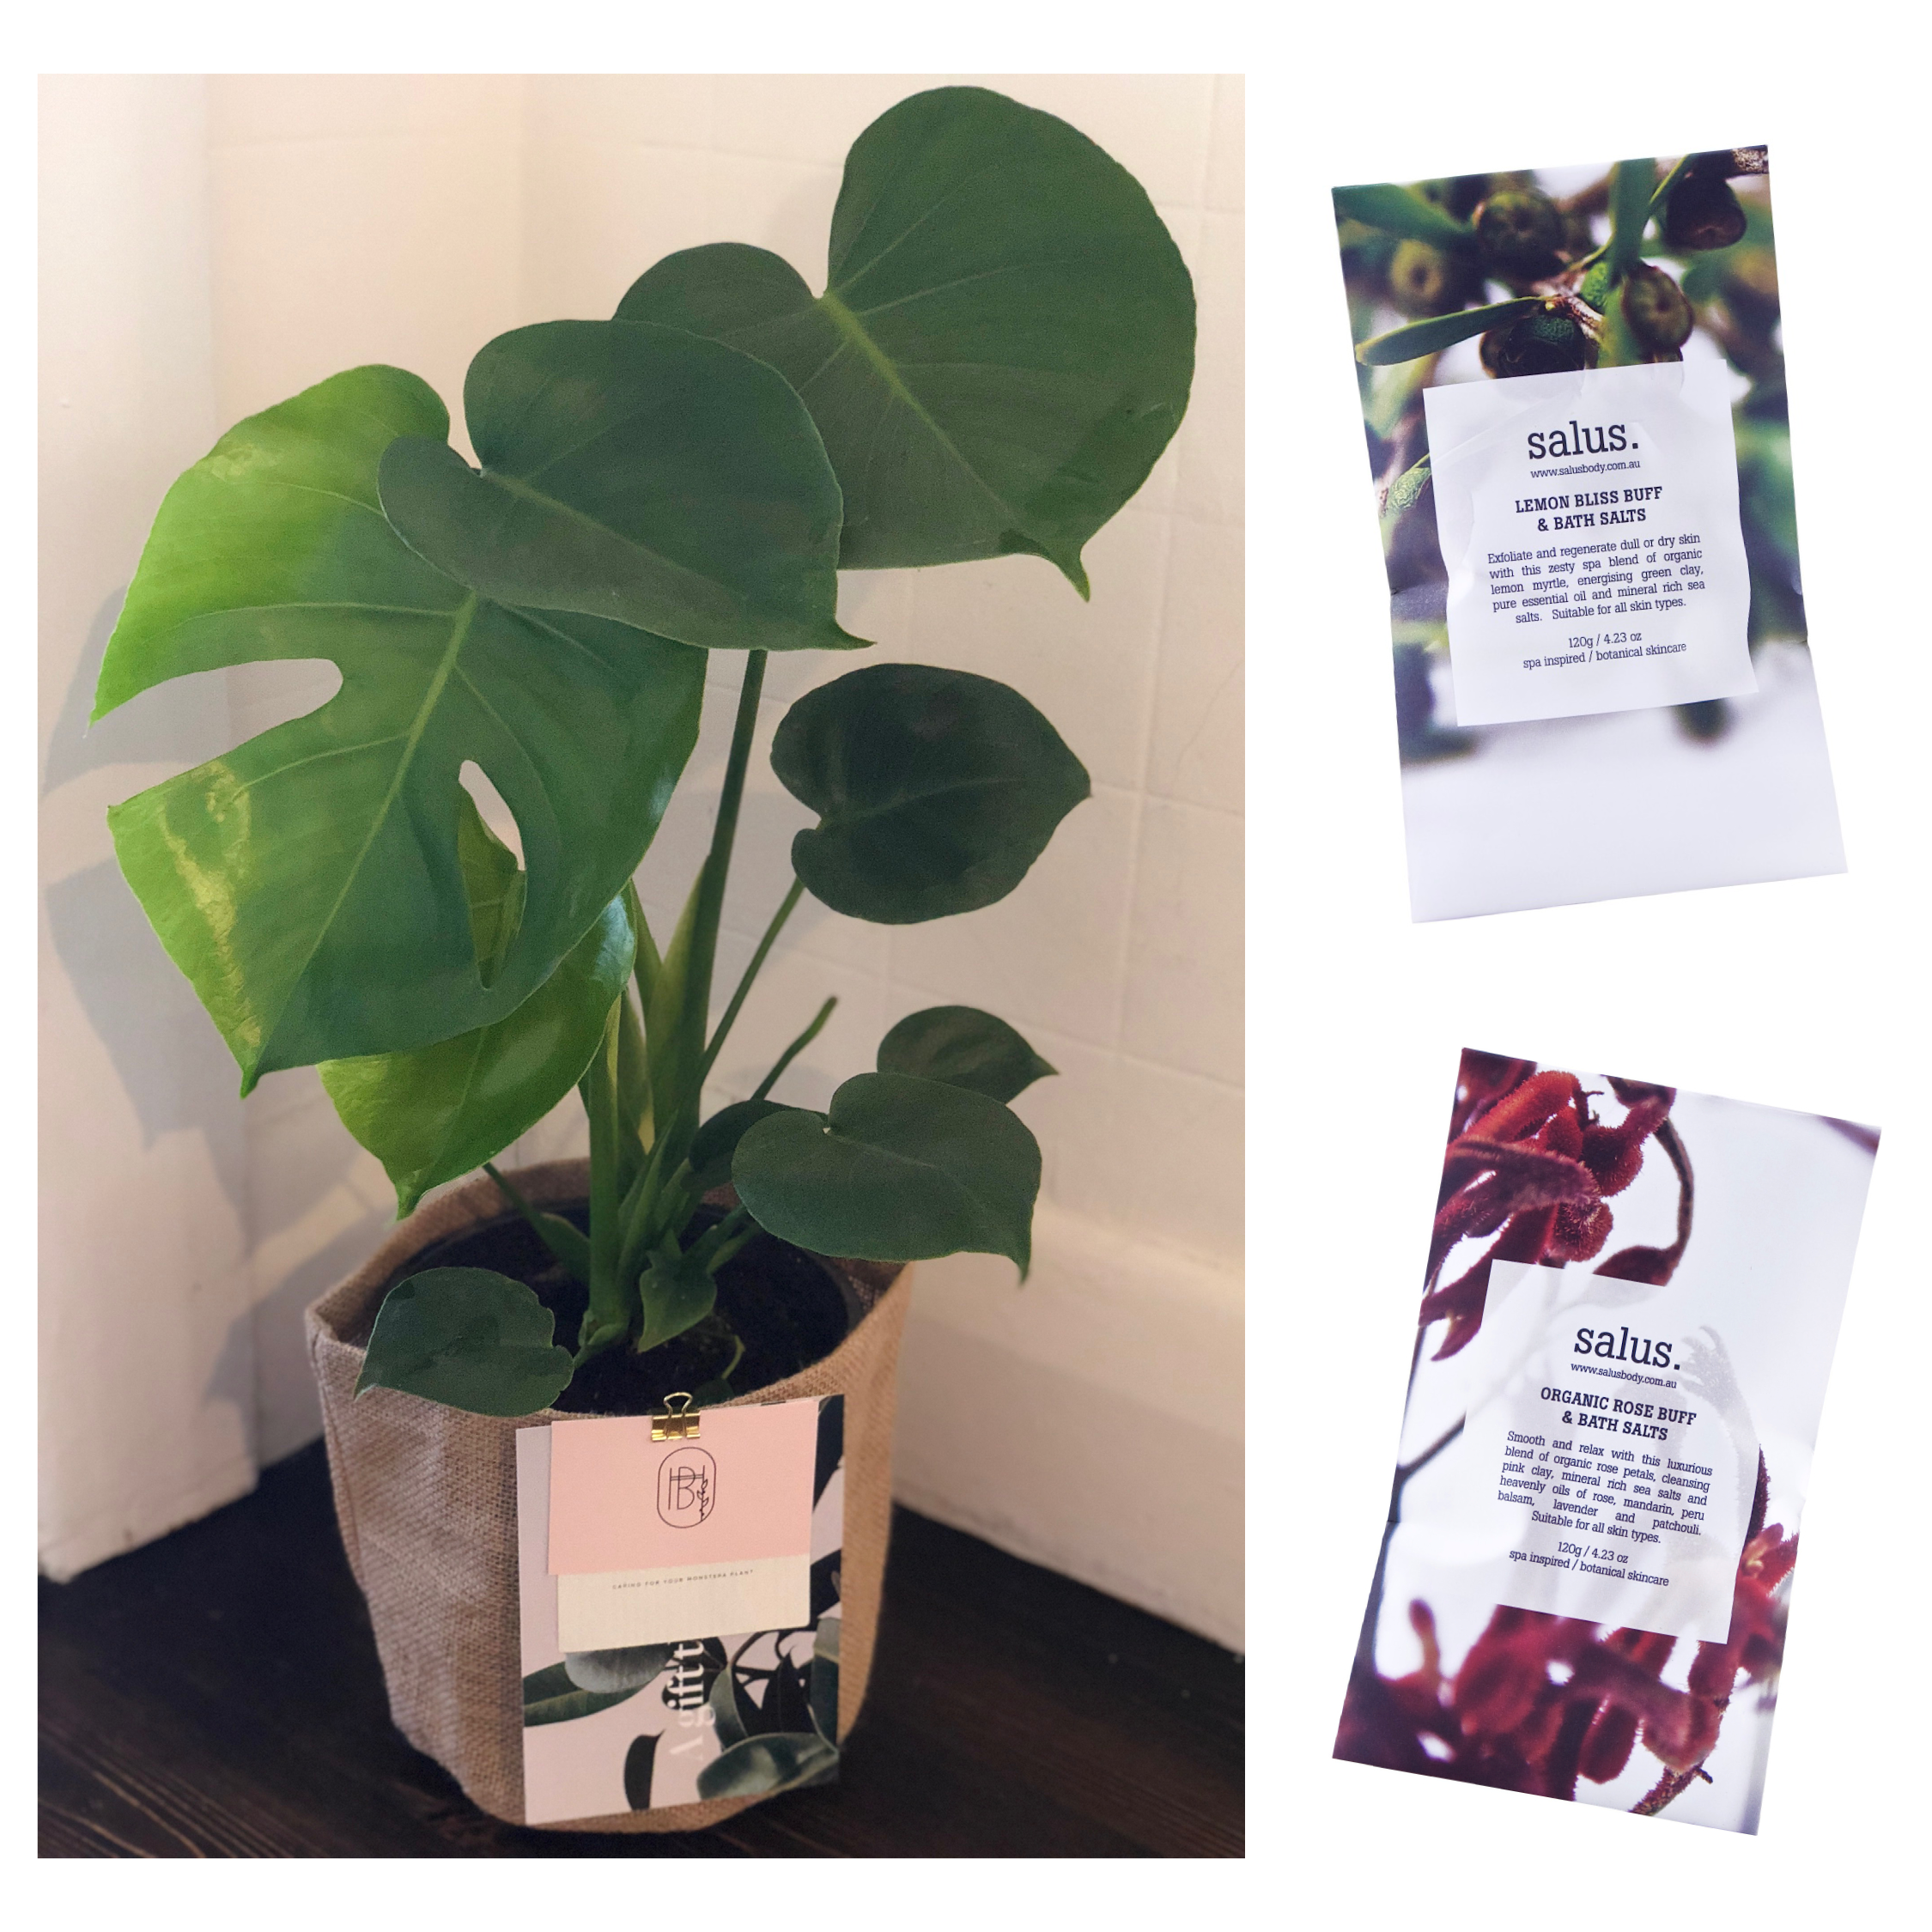 Unique Mother's Day Gift Ideas Melbourne 2018 - send plants not flowers delivered on Mother's Day in Melbourne